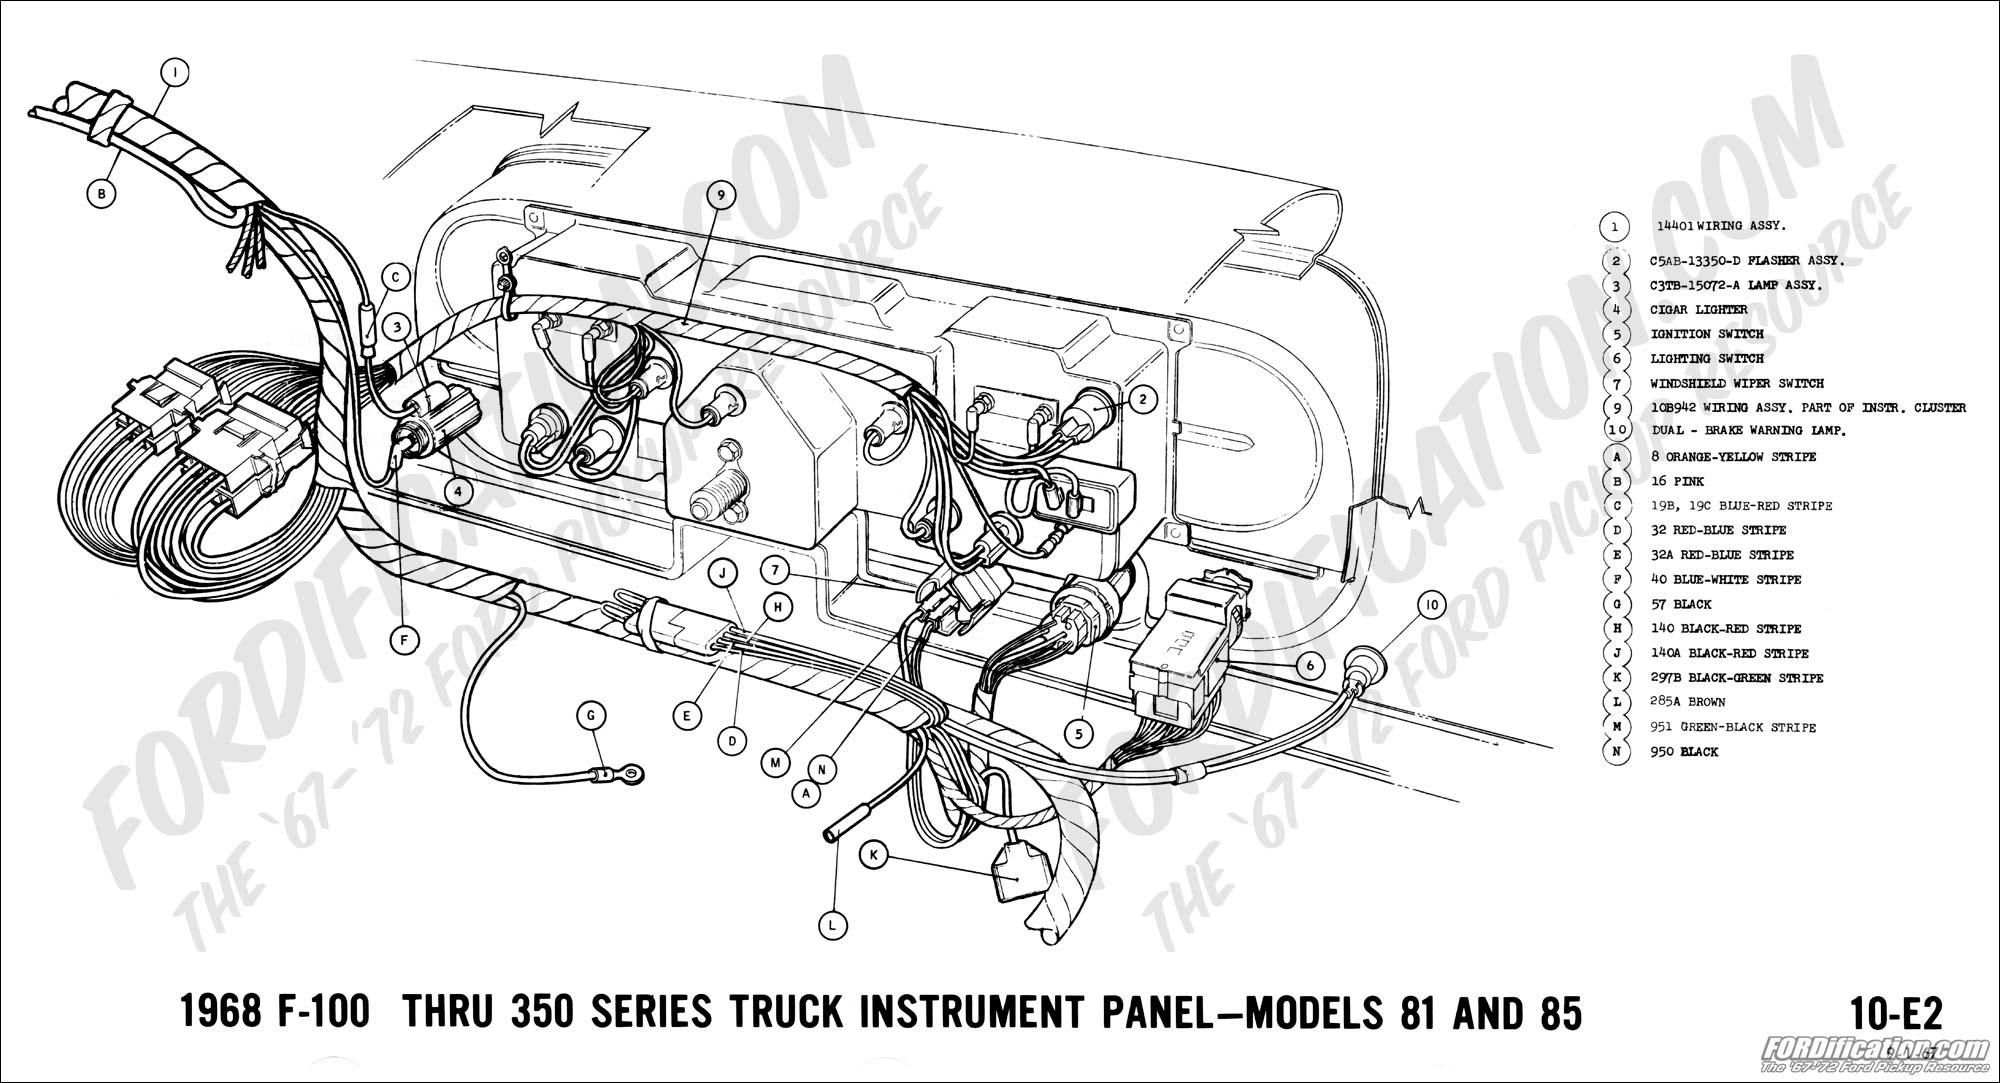 72 ford pickup wiring diagram 1 wiring diagram source 1968 Ford Alternator Wiring Diagram Free Picture